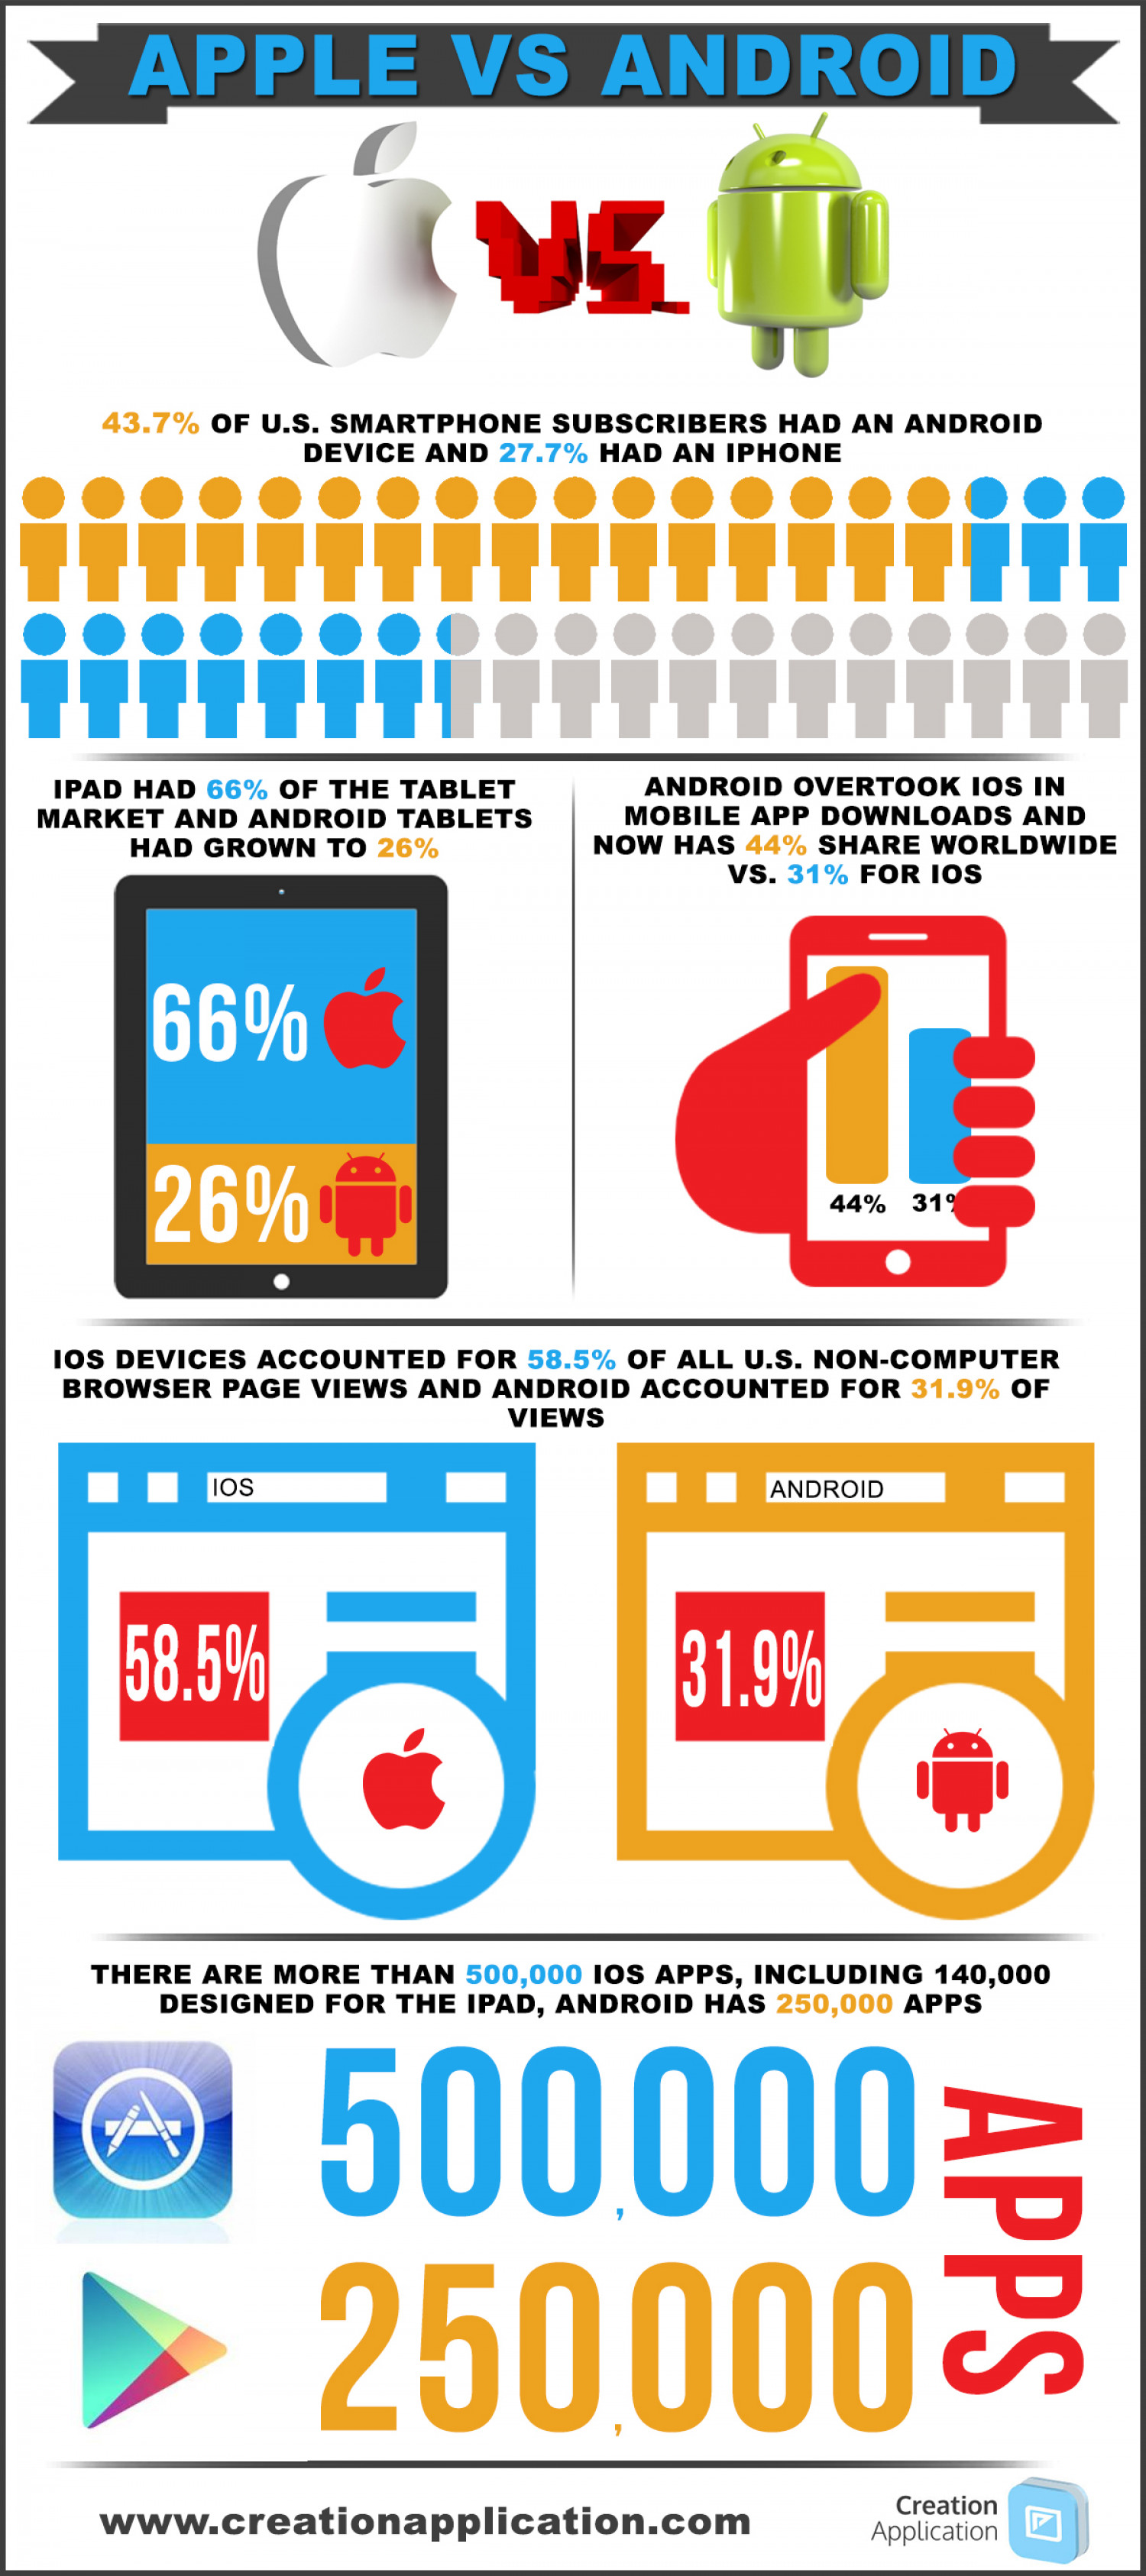 Should a start-up Mobile App go iOS or Android? Infographic